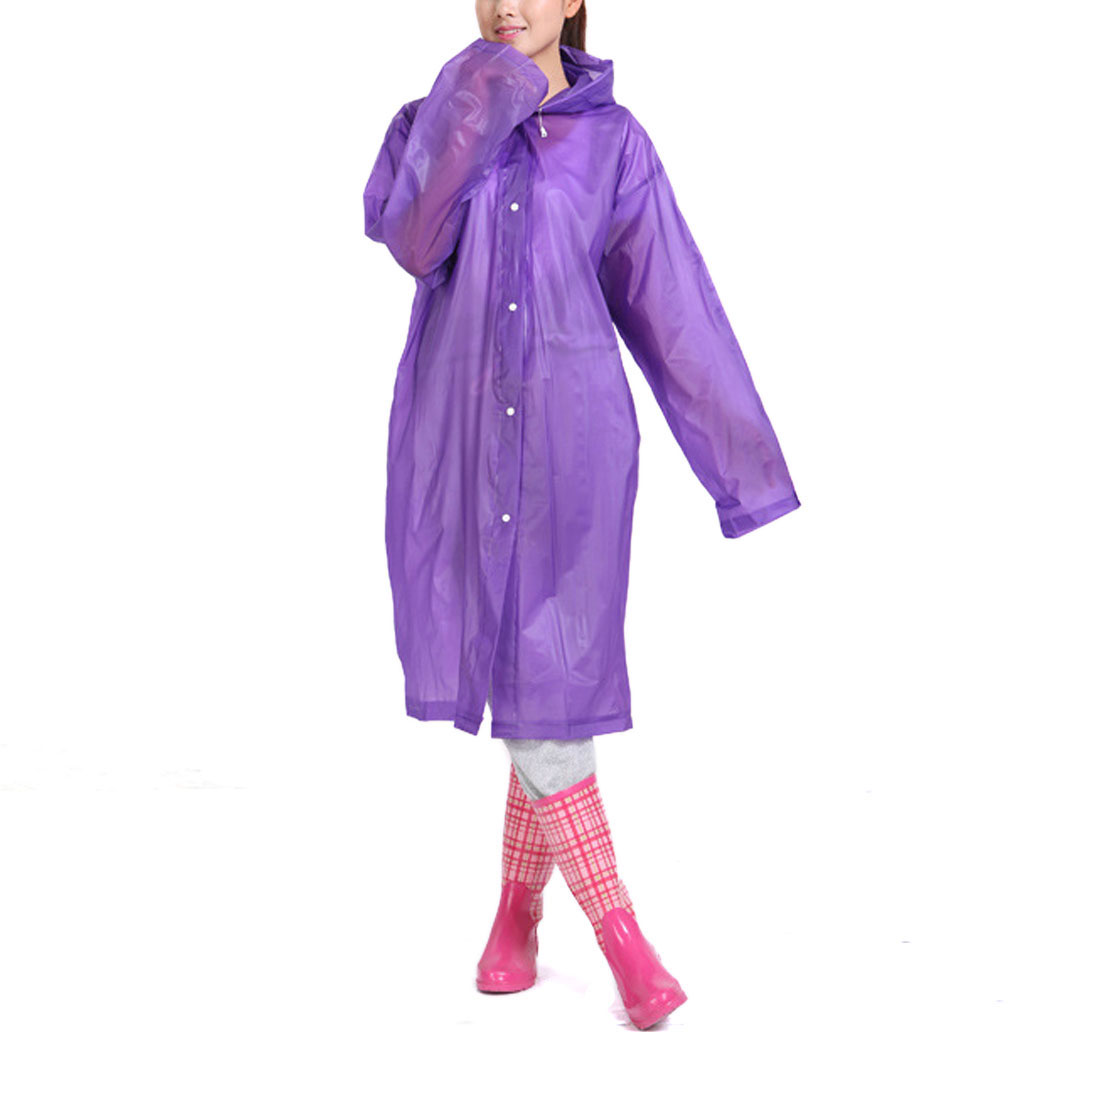 M Purple Portable EVA Waterproof Adult Raincoat Hooded Rain Poncho for Bicycle